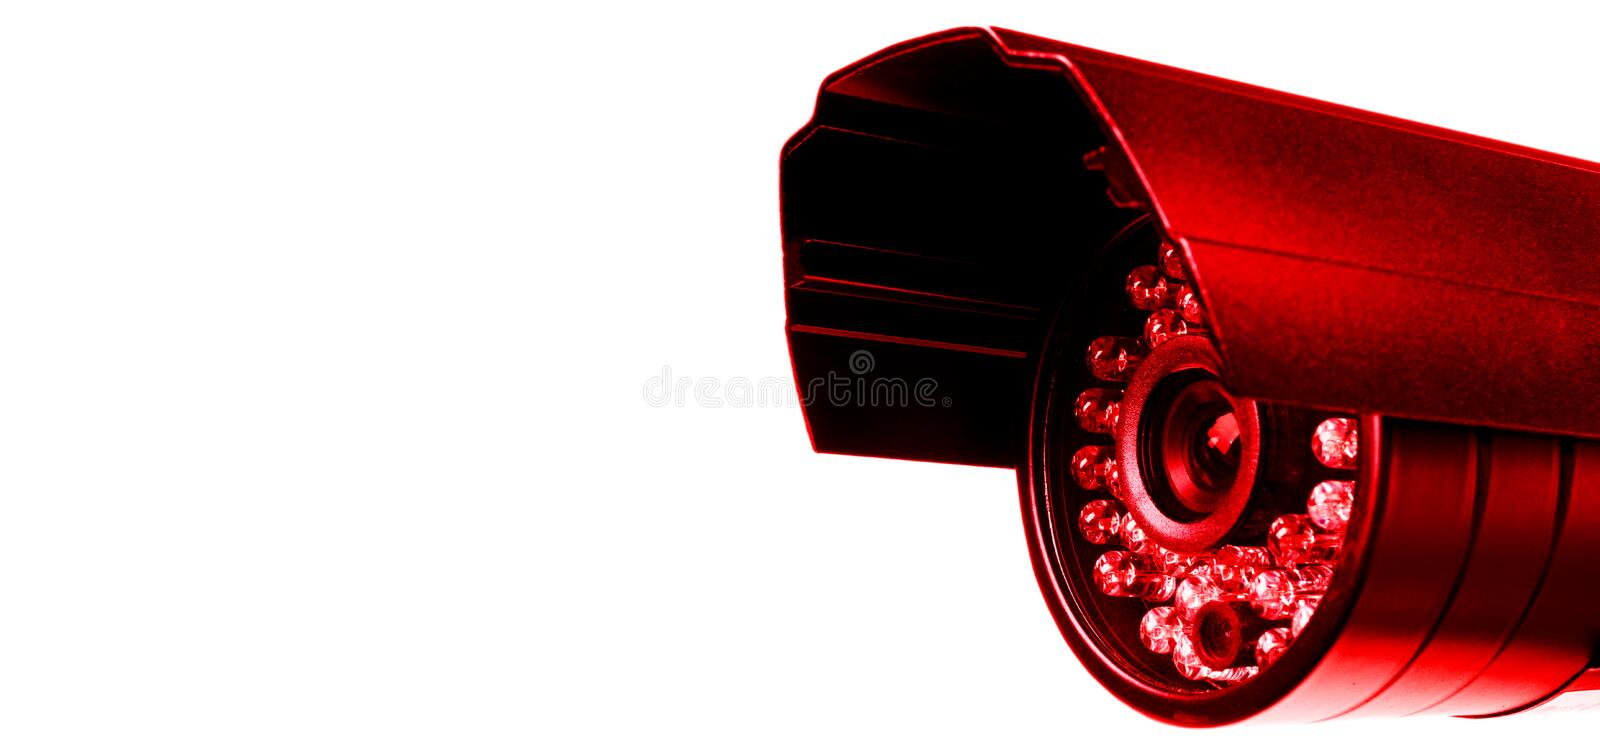 Red CCTV security camera video equipment. Surveillance monitoring. Video camera lens closeup. Macro shot. Security concept. Securi. Ty camera isolated on white stock photo